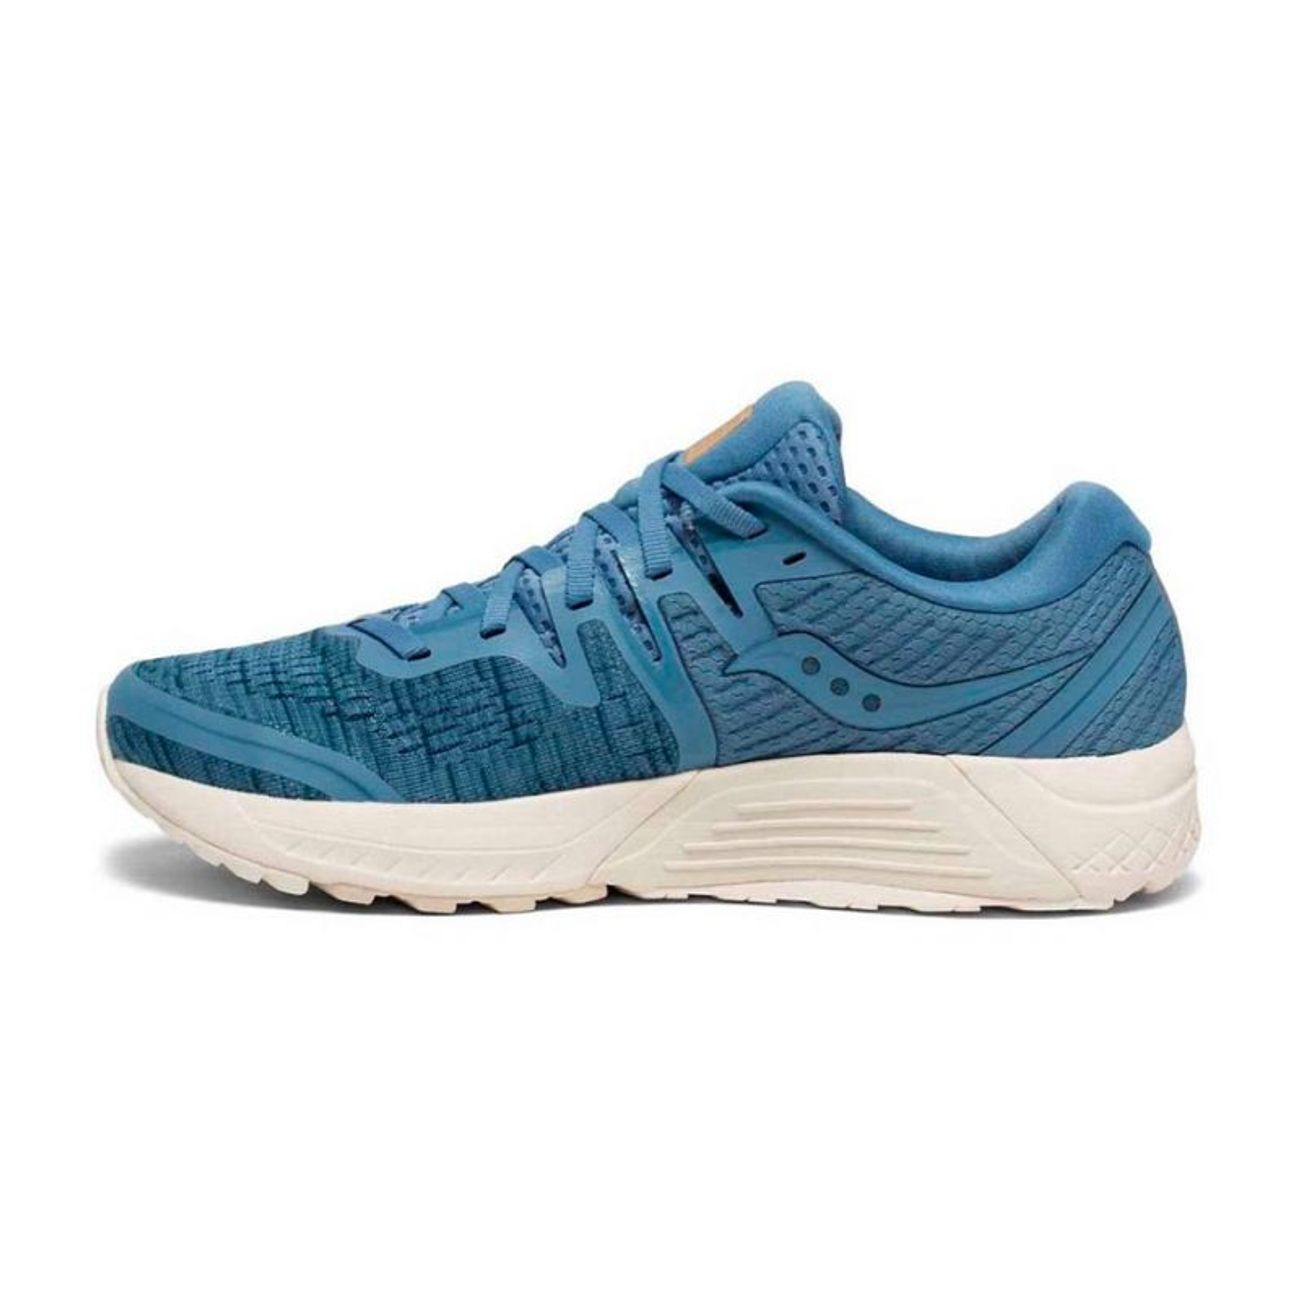 S10464 Saucony Bleu 41 Iso Femme Guide 2 Padel Adulte QrCWEoxBed